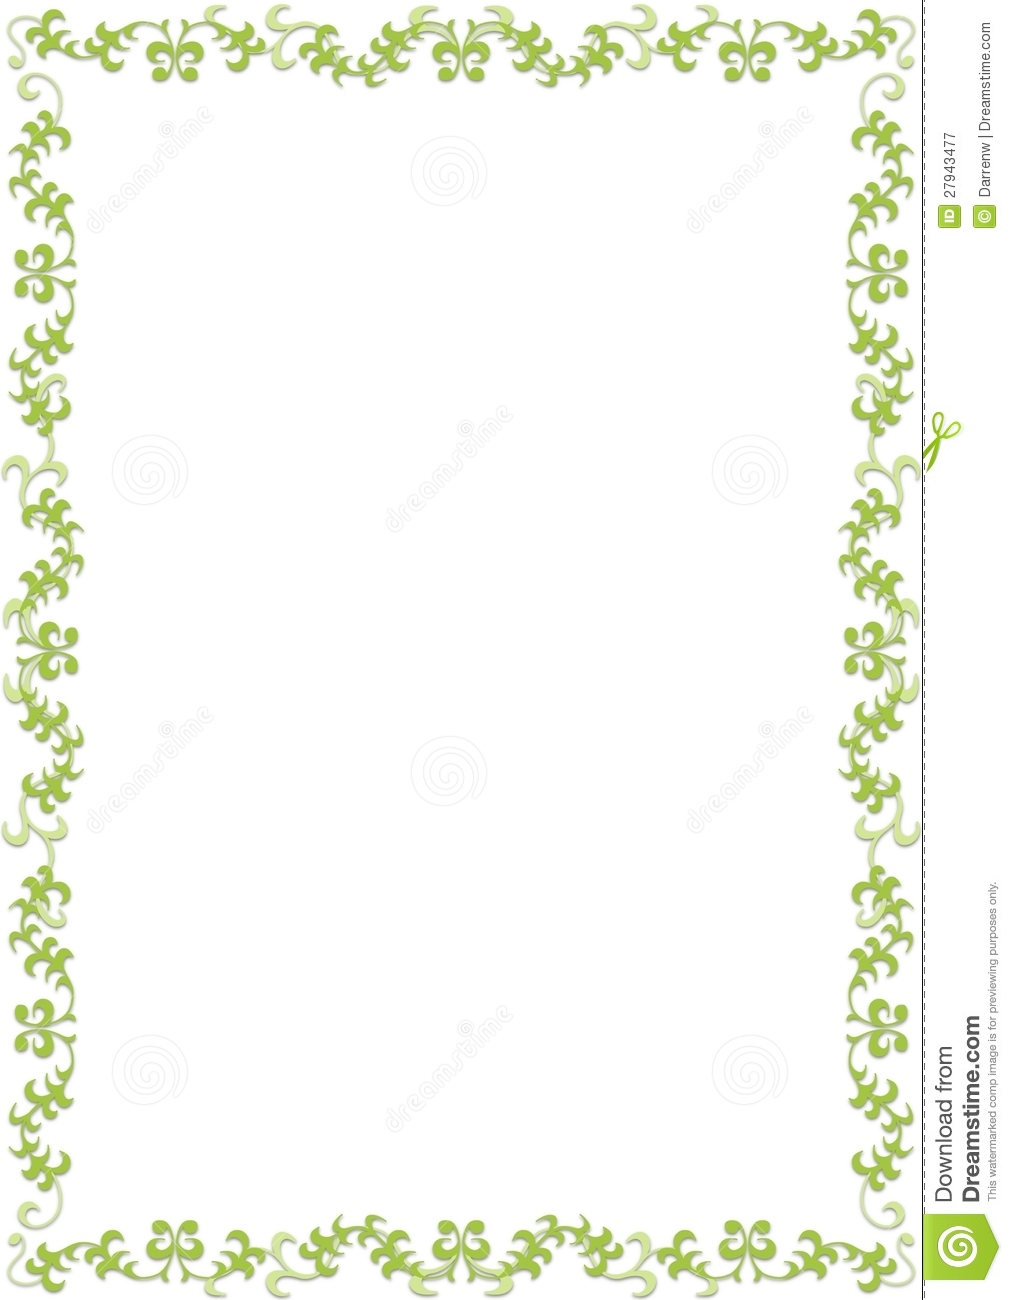 Green Floral Border Stock Illustration Illustration Of